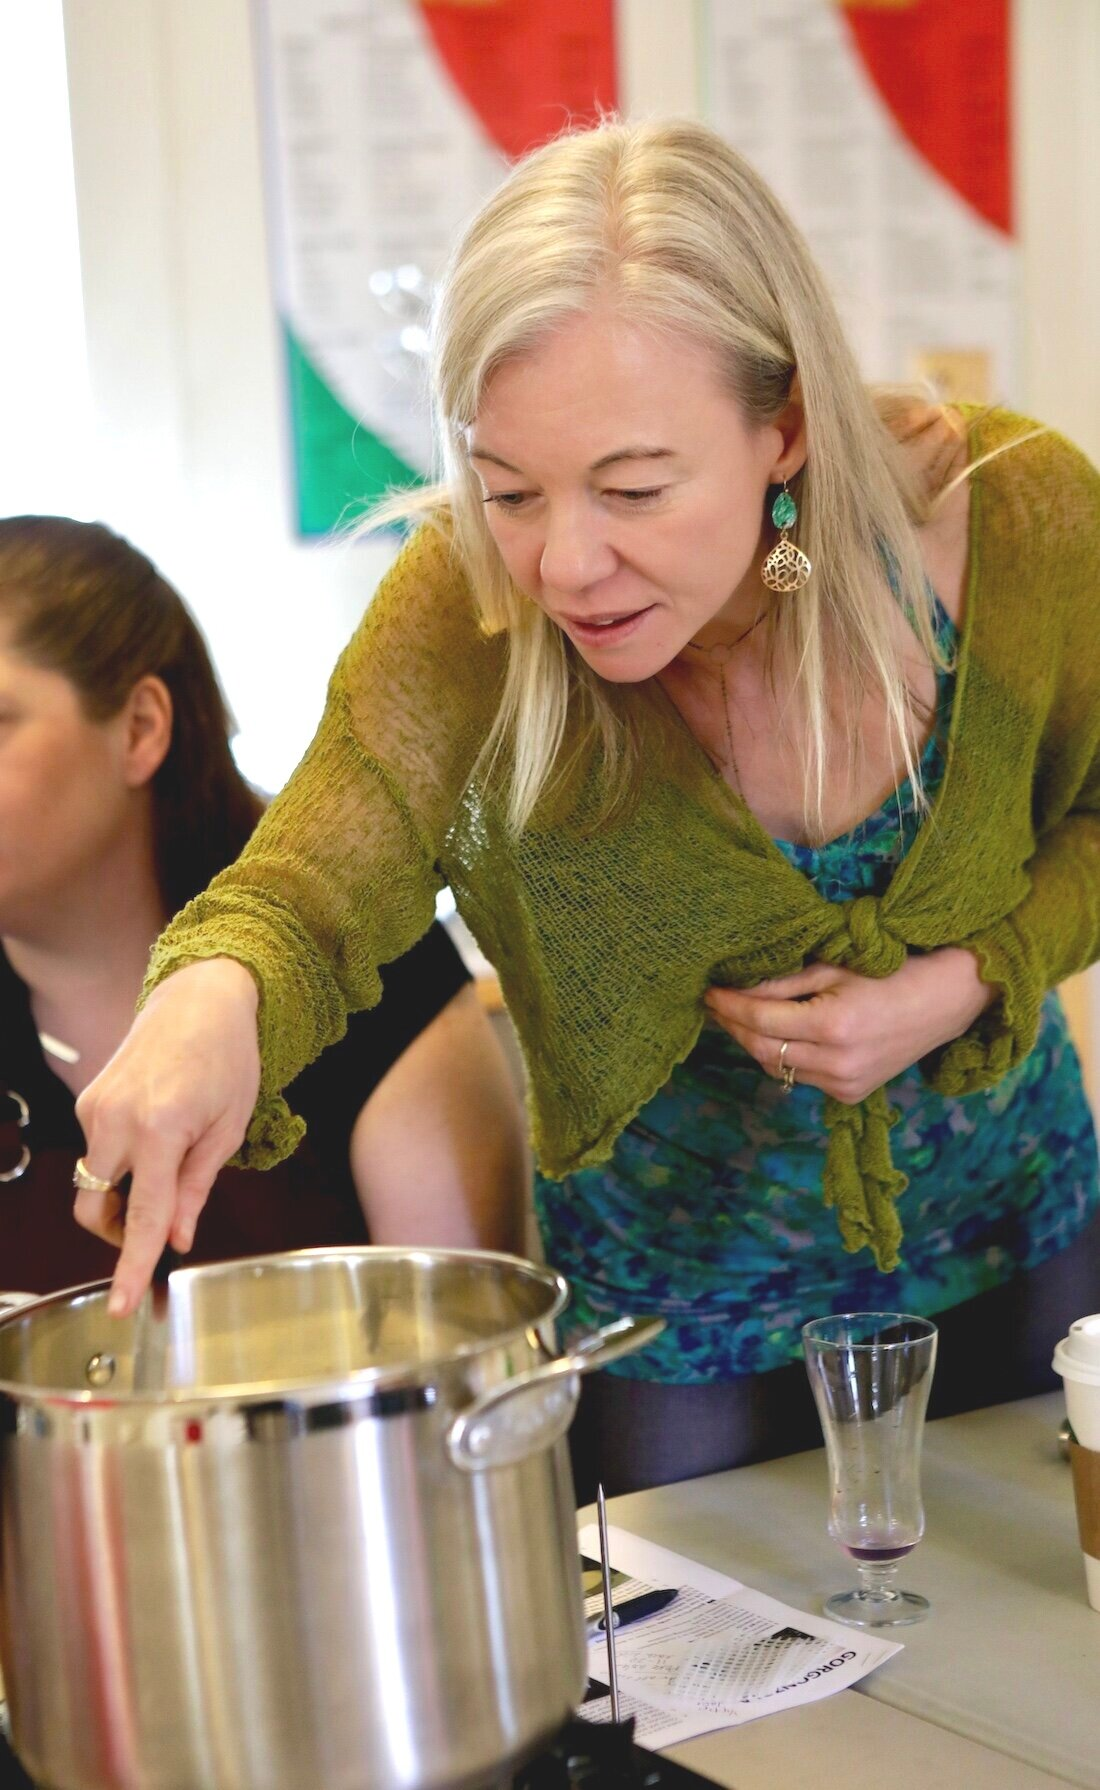 sacha-laurin-cheese-making-vegan-cooking-class-cookhouse-san-francisco.jpg